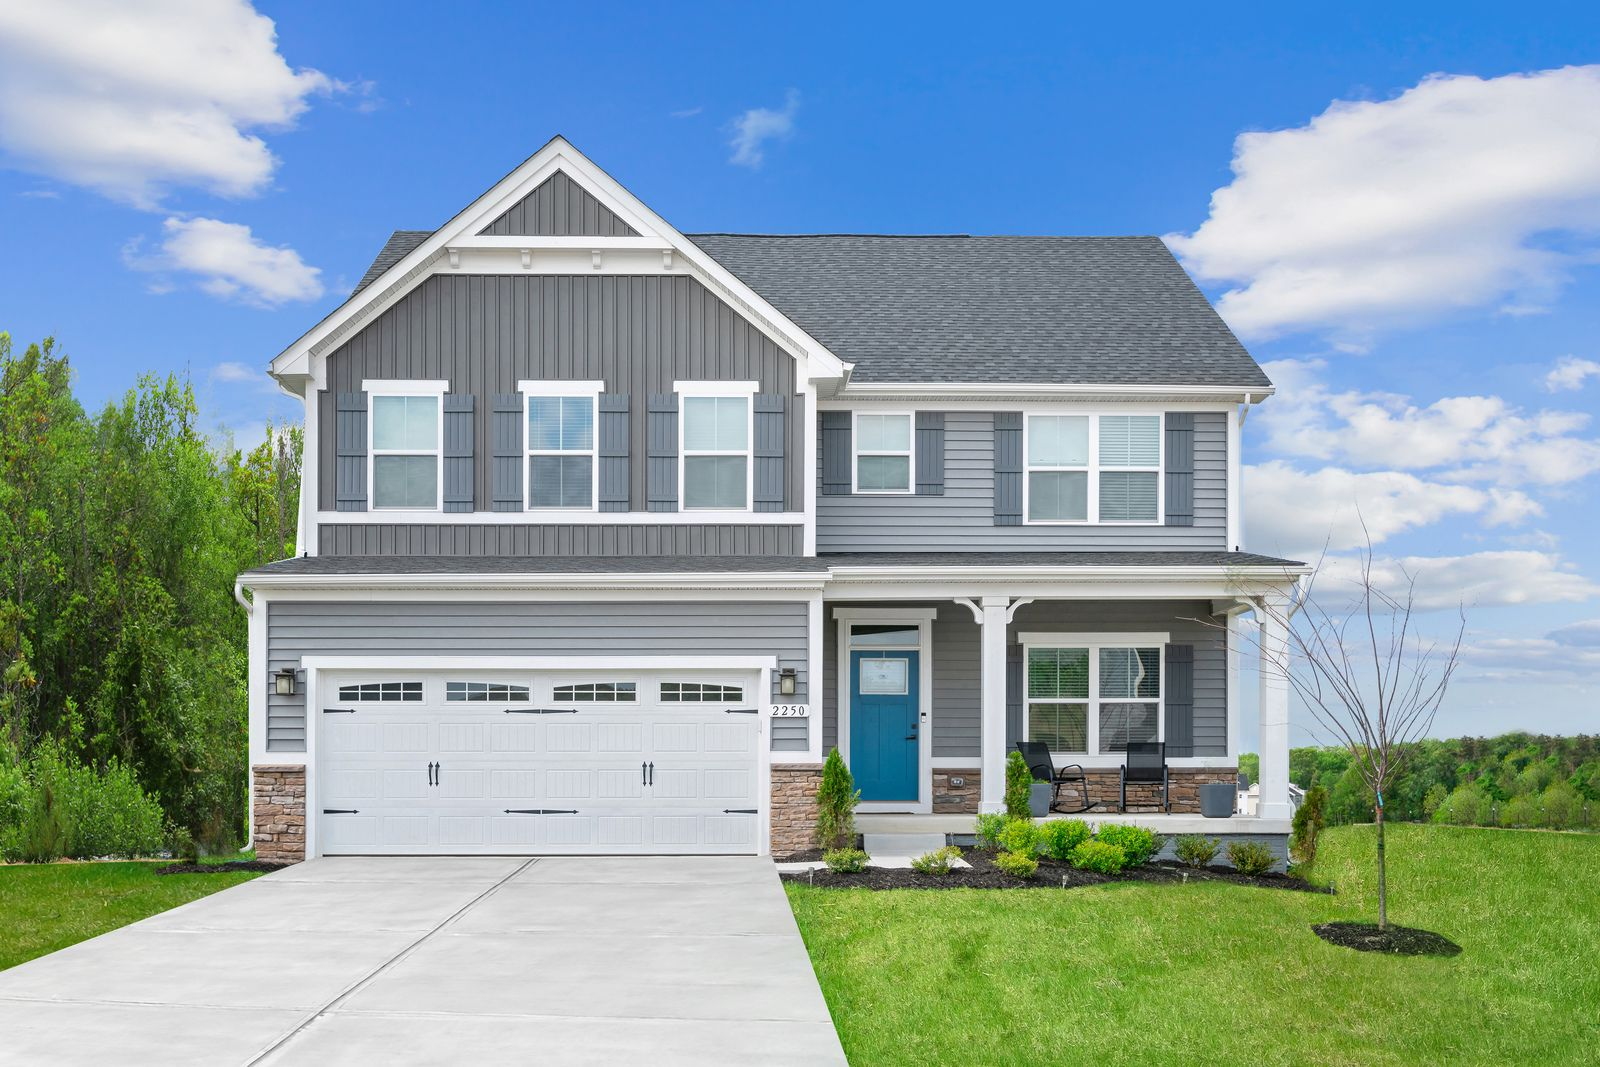 Spacious homes on tree-lined homesites with upgraded, modern finishes and optional basements:Live conveniently just 3 min from I-26 access. Schedule your visit today!